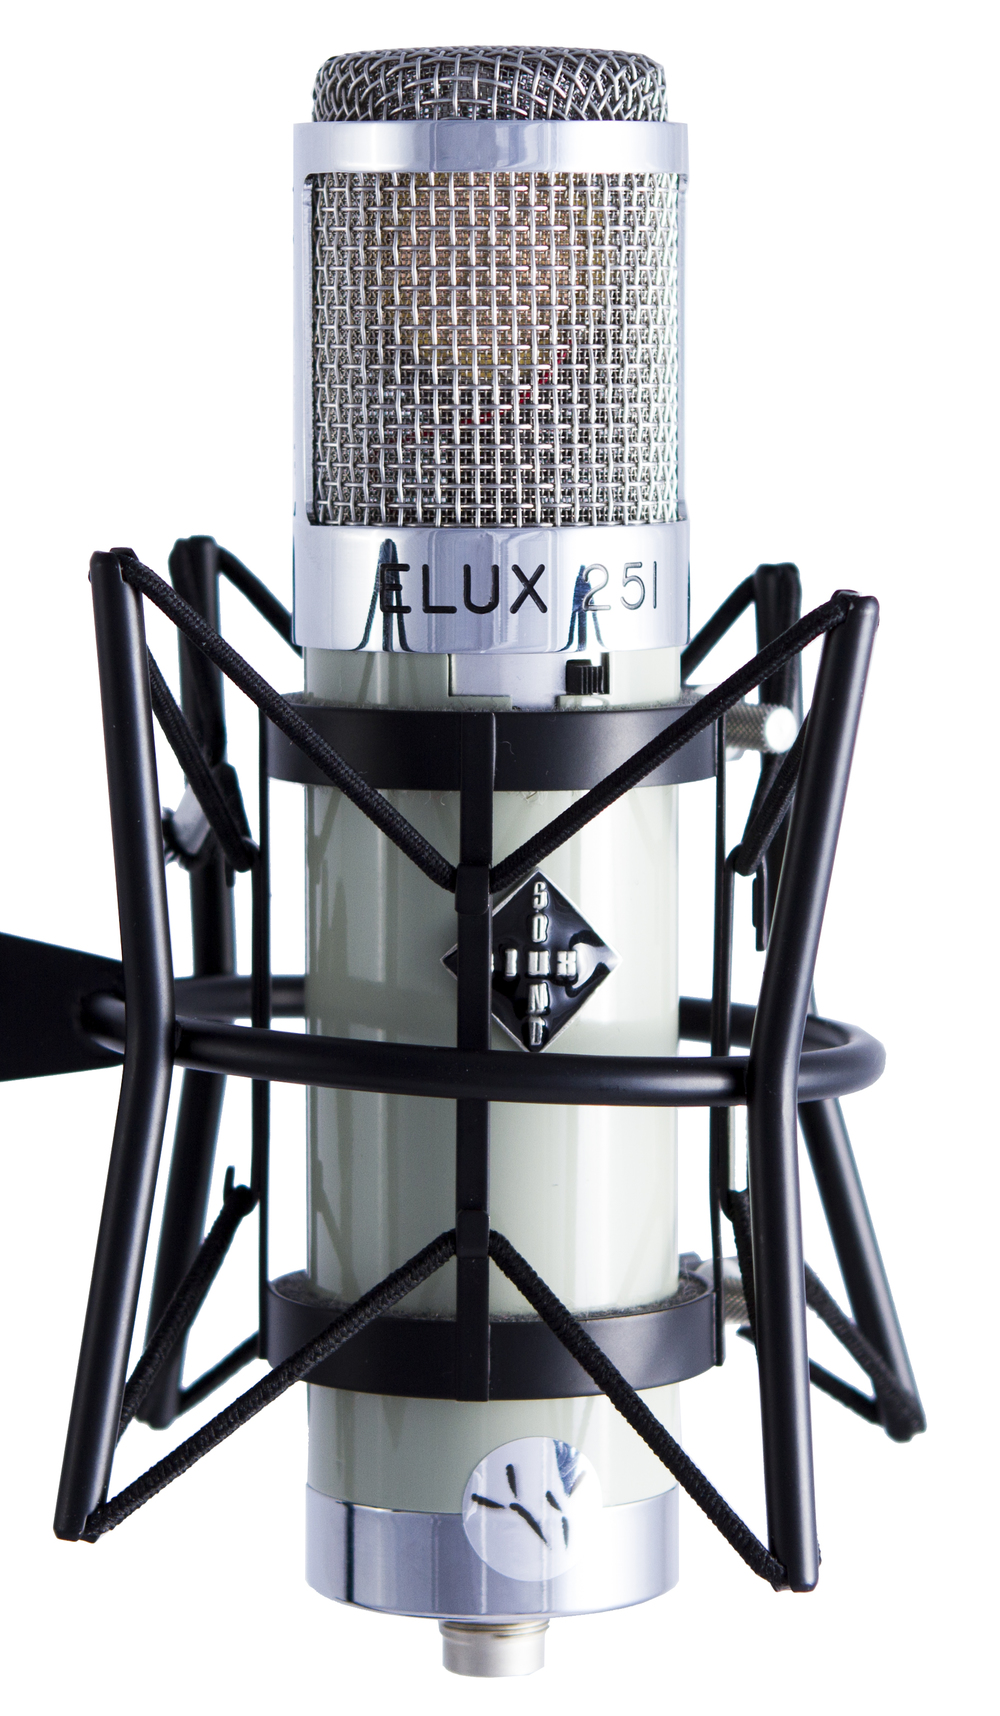 Soundelux ELUX 251 - $100 day